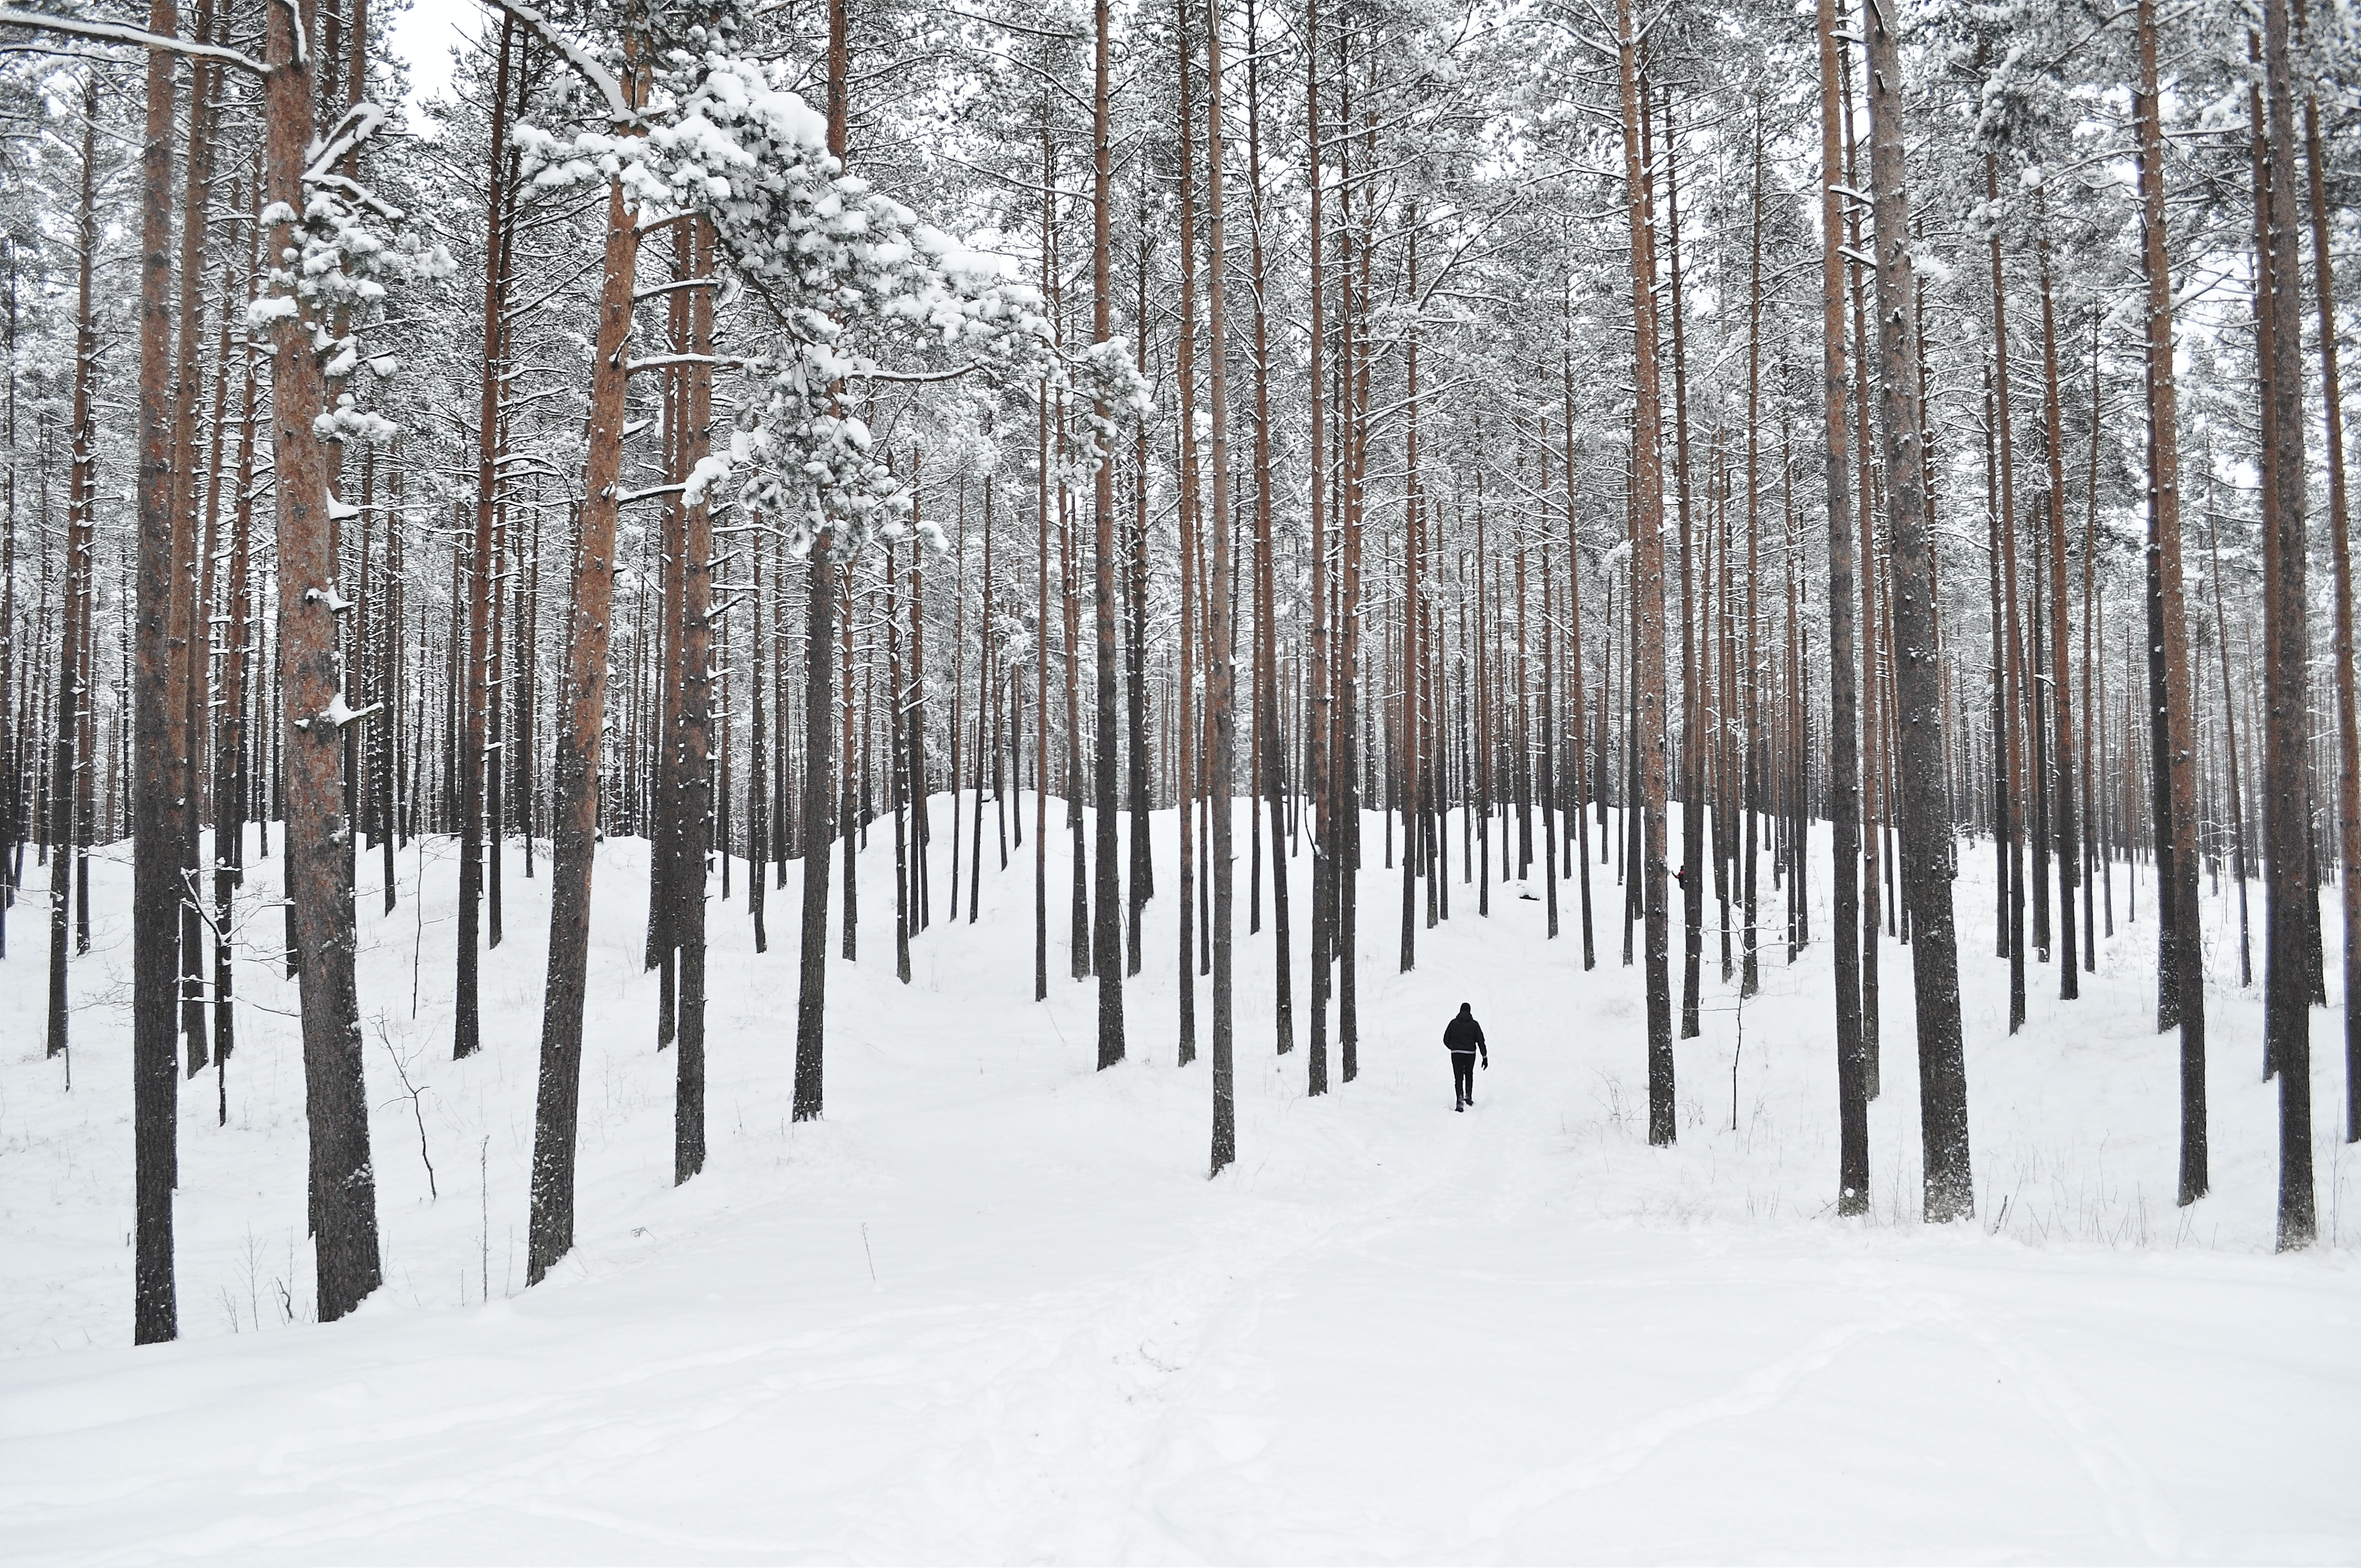 A person walking in the forest through tall pine trees in the snow